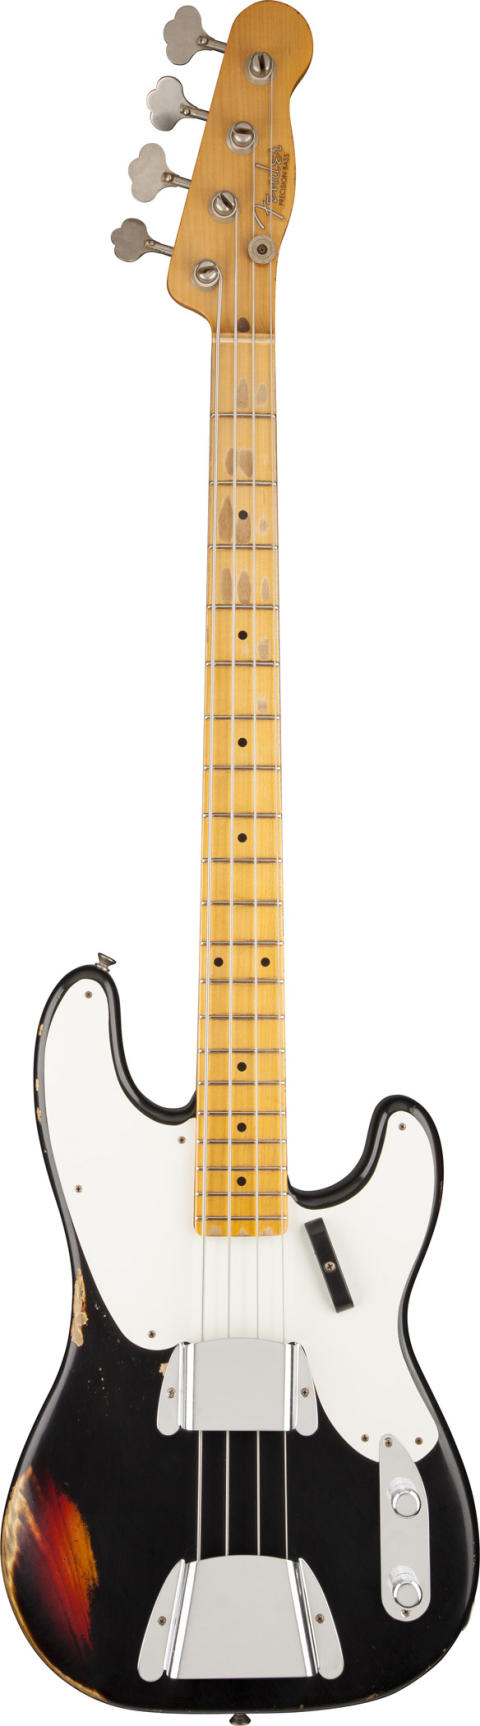 Limited Relic® 1955 Precision Bass®